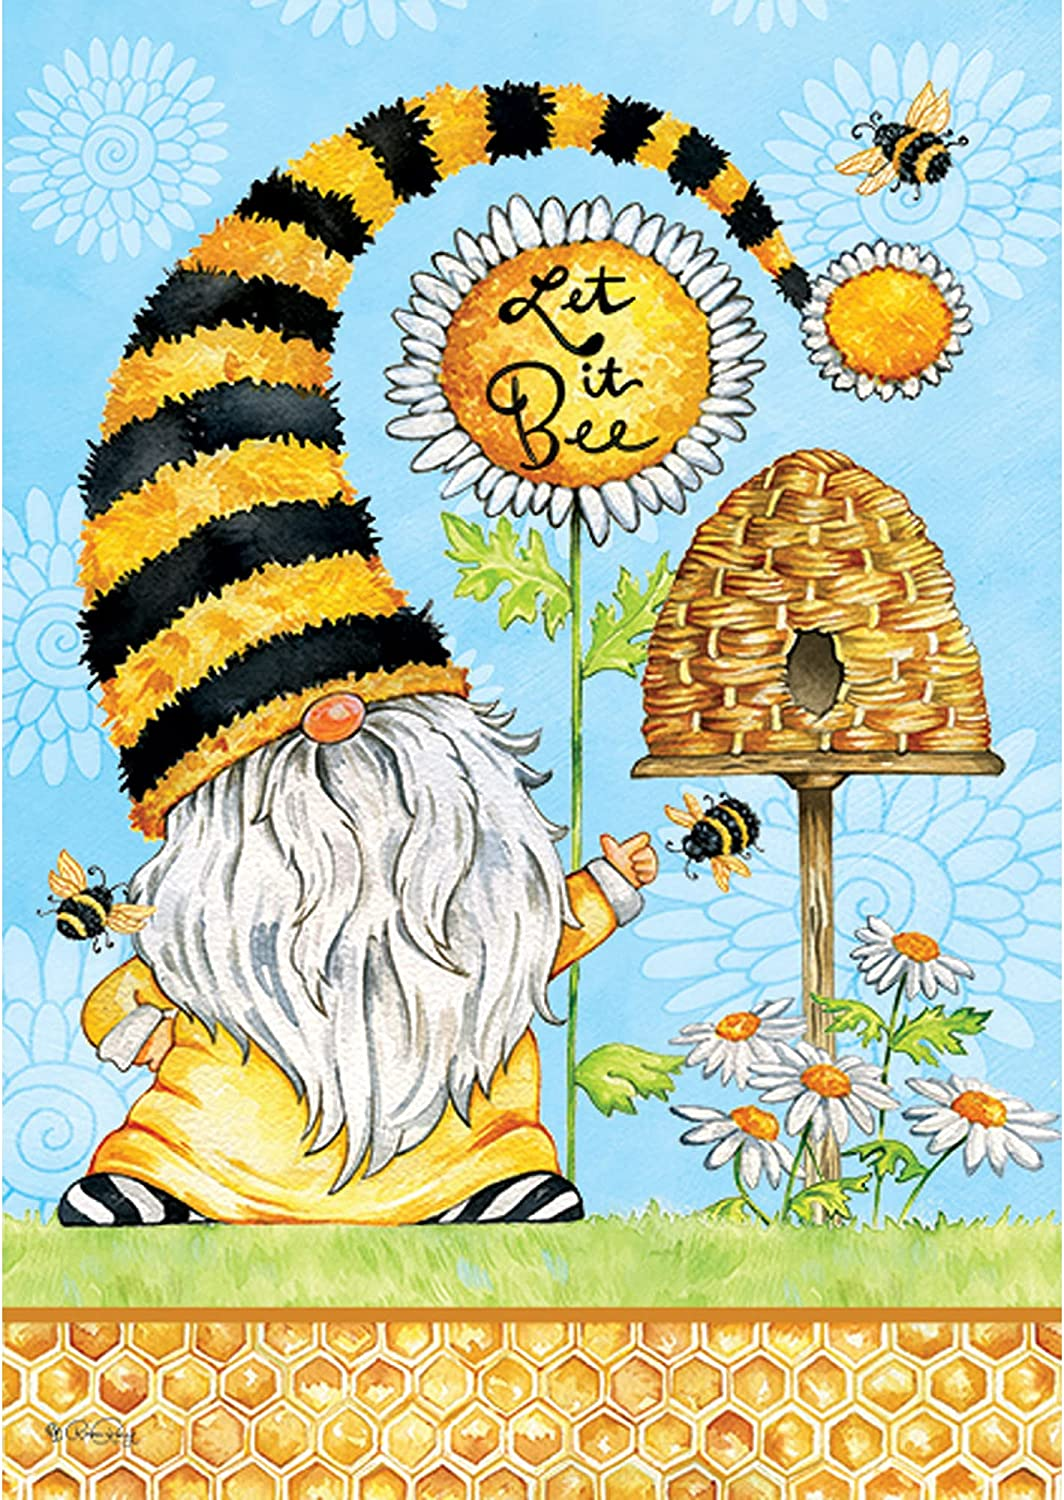 Custom Decor Gnome & Bees - Garden Size, 12 x 18 inches, Decorative Double Sided, Licensed and Copyrighted Flag - Printed in The USA Inc.